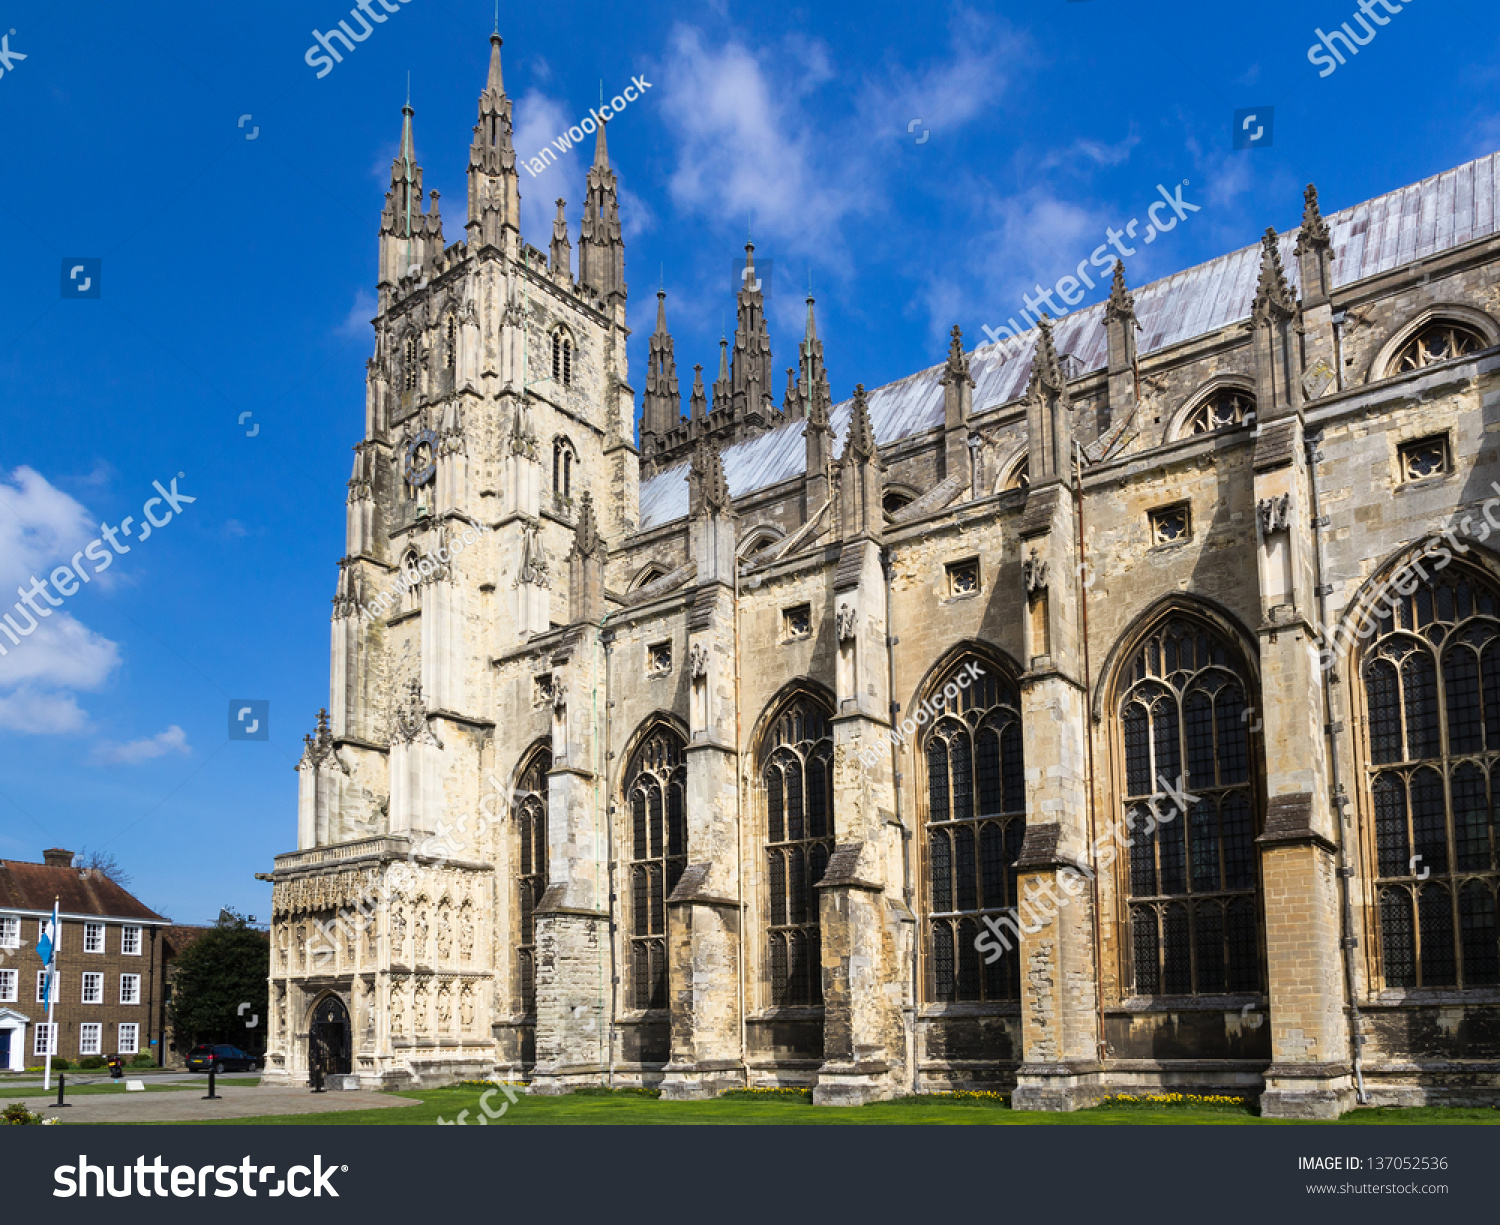 gothic style in britain essay The gothic novel took shape in england around 1790-1830, although its roots  can be found much earlier in writing dating back to the middle.